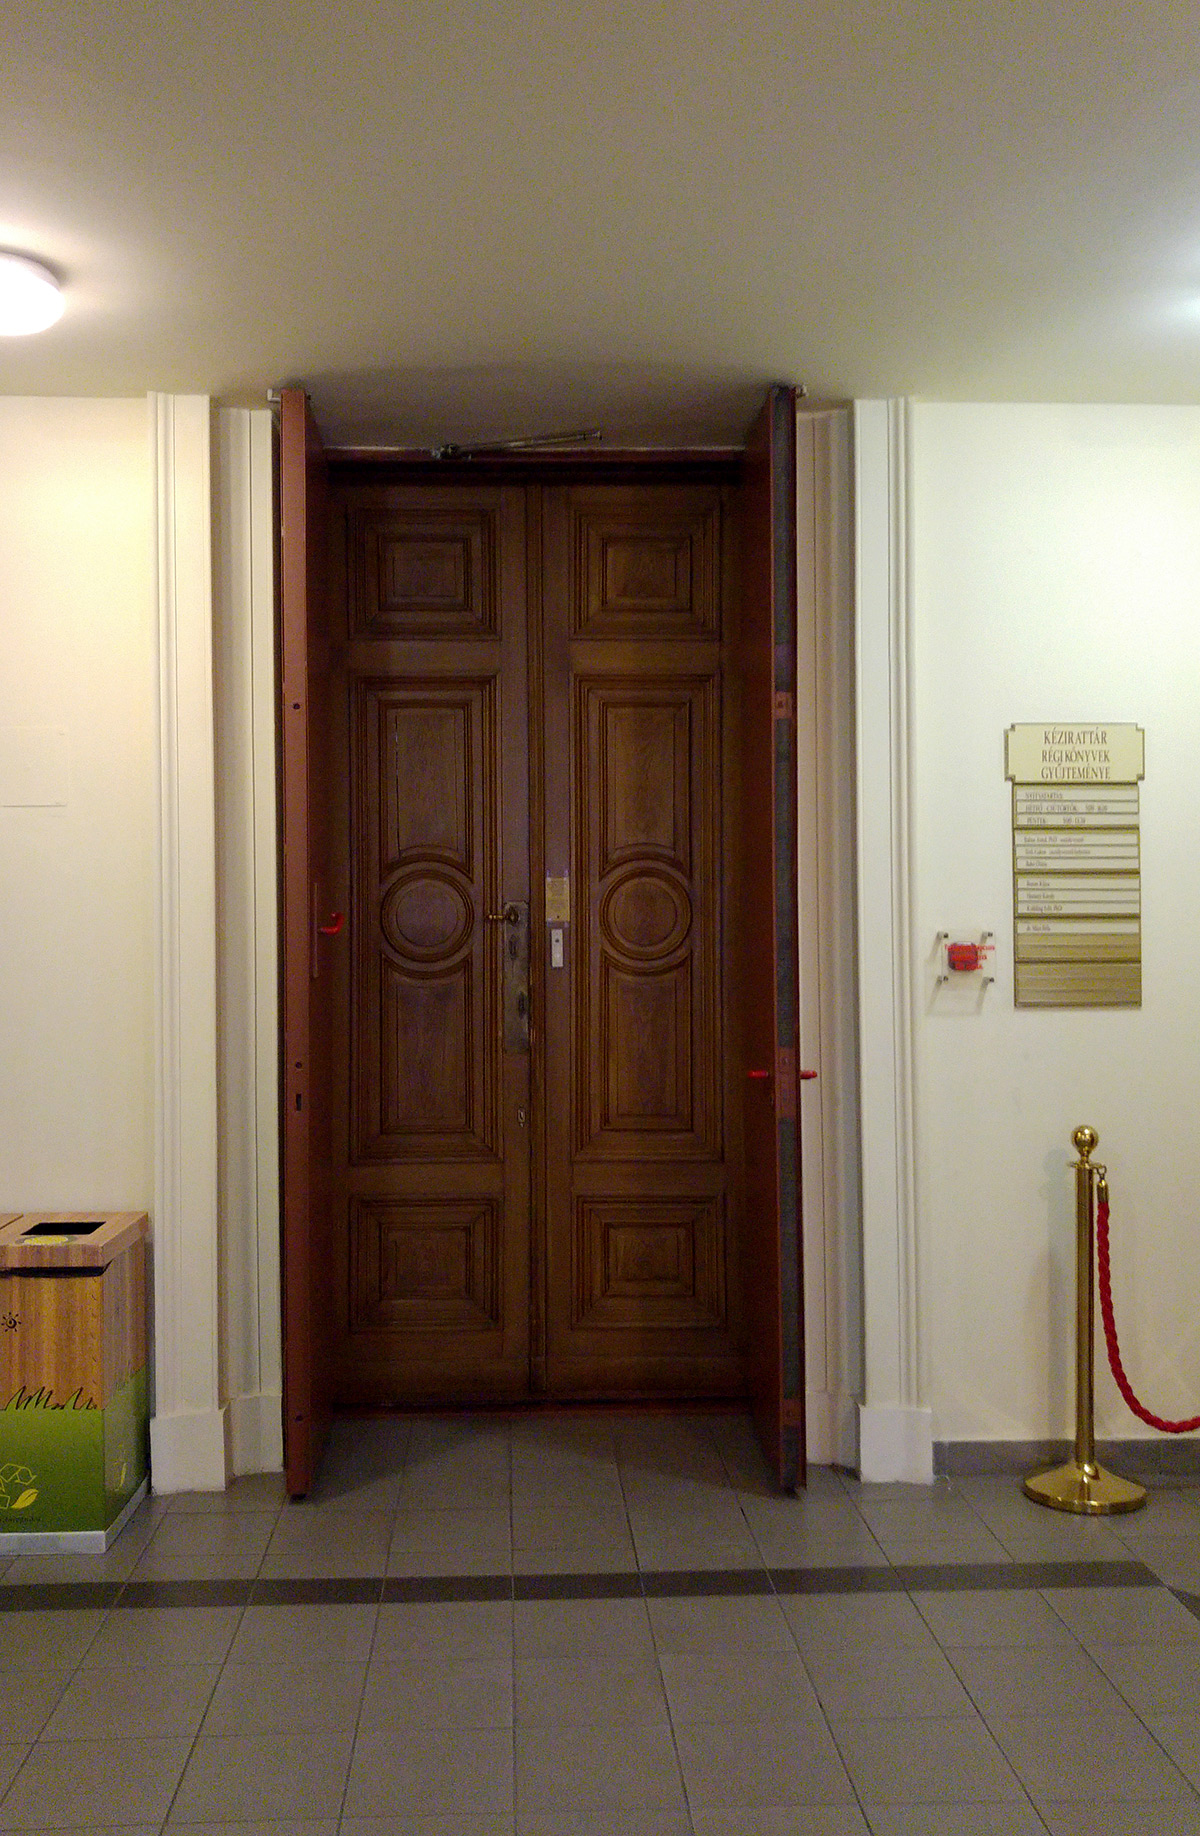 The entrance of the Department of manuscripts and rare books at the headquaters of the Hungarian Academy of Sciences, Budapest